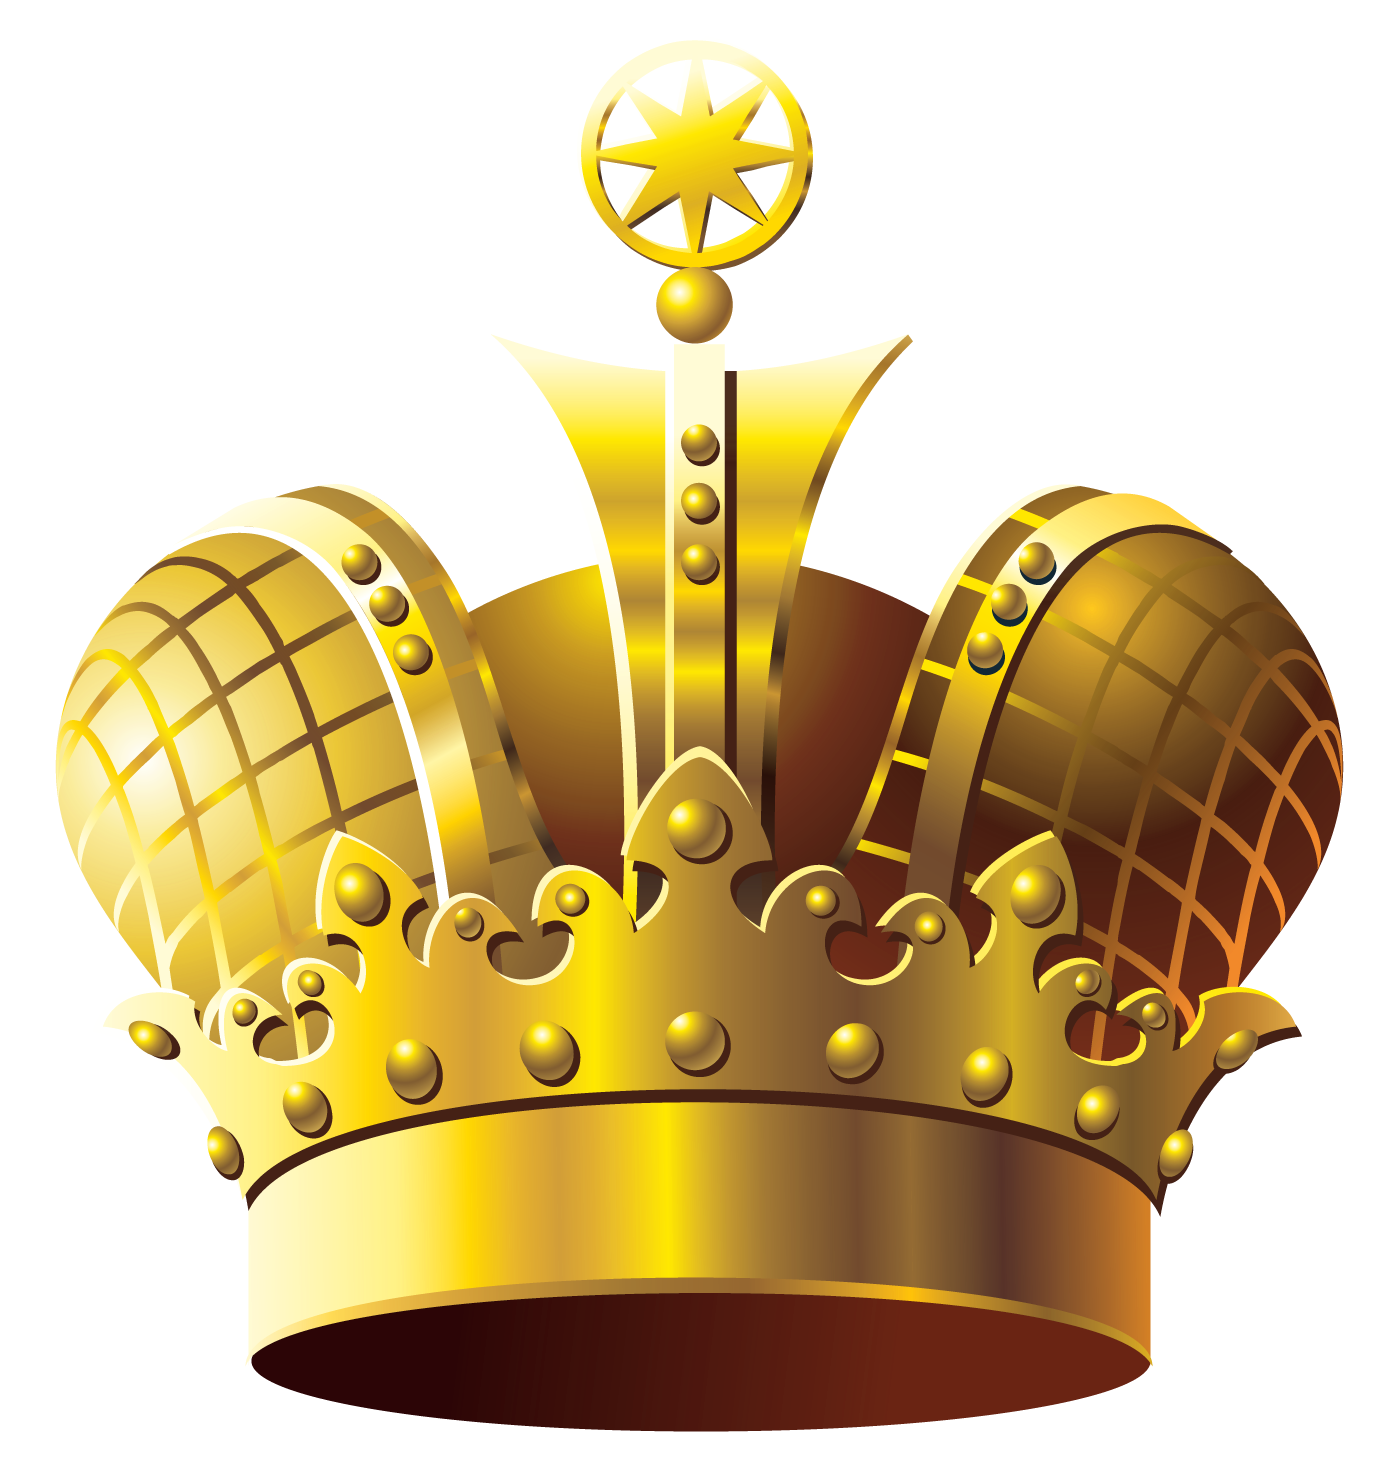 crown clipart png - photo #36